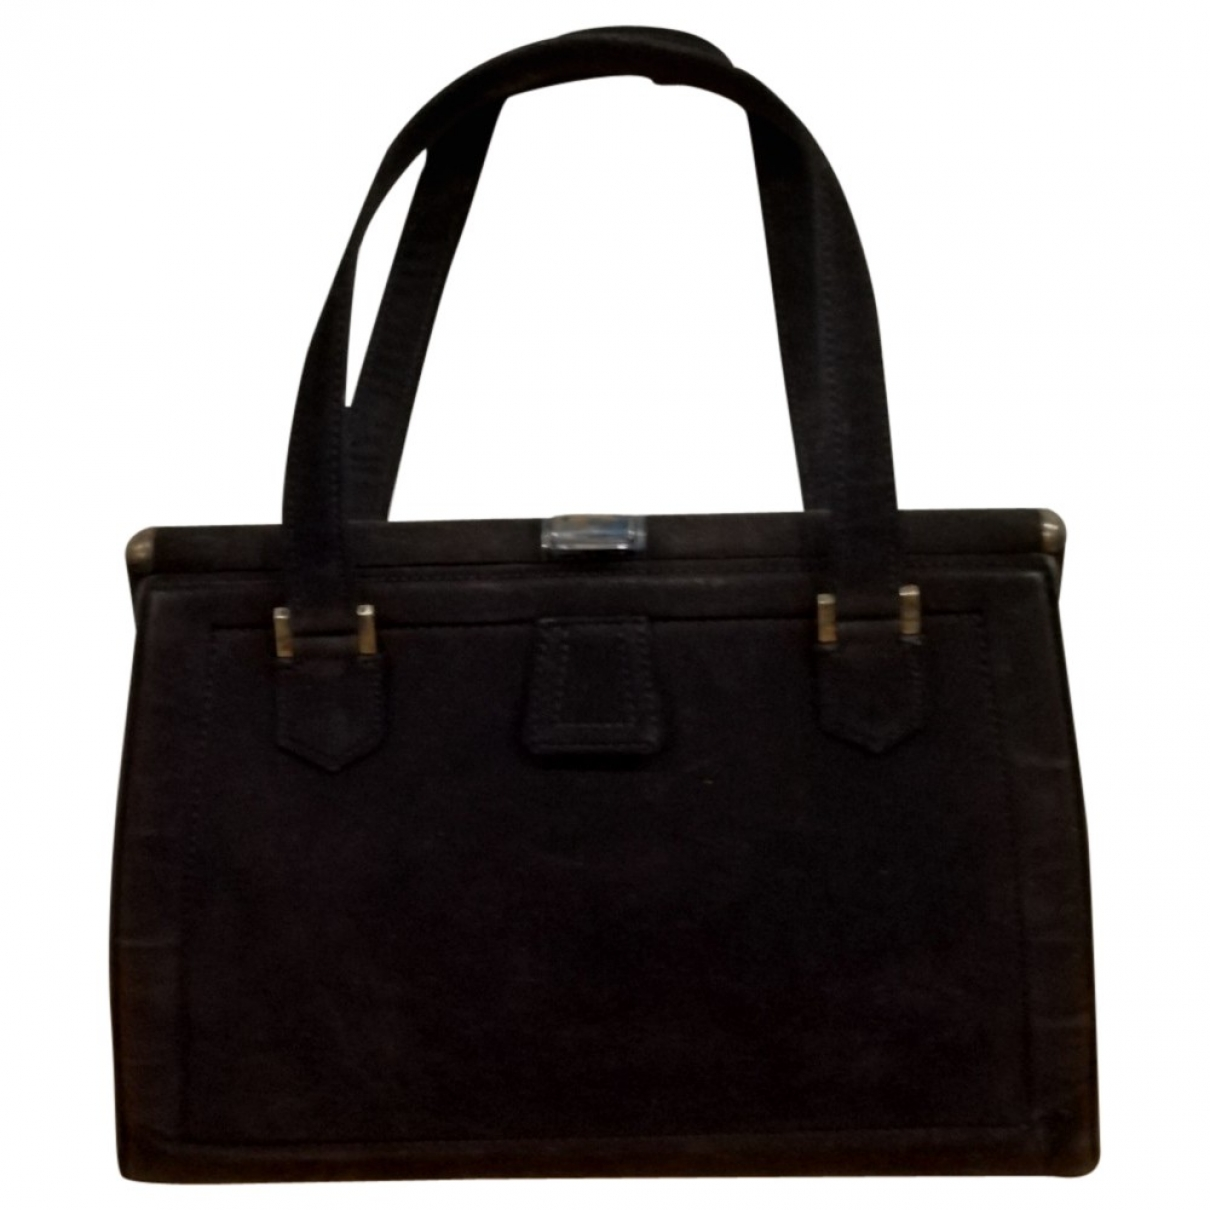 Hermès \N Black Leather handbag for Women \N